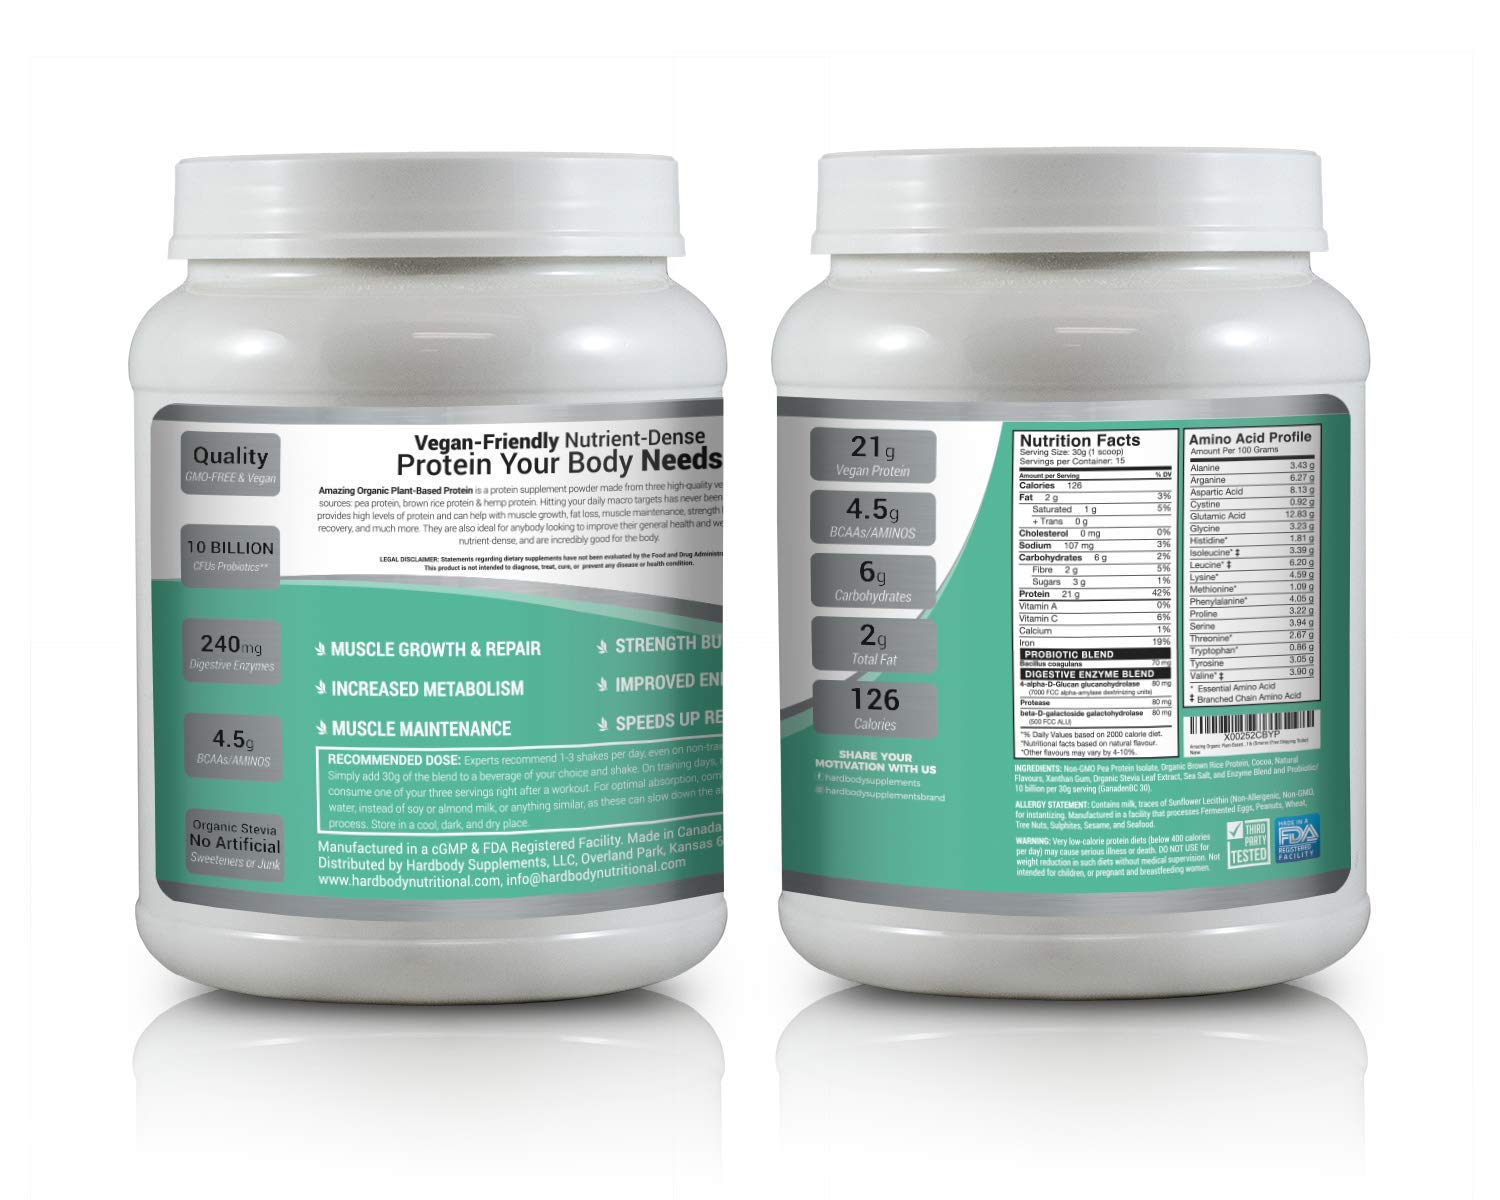 Amazing Organic Plant Based Vegan Protein Powder Made with Probiotic's, Digestive Enzymes & Organic Stevia. Vegetarian Protein Shake for Healthy Gut Bacteria